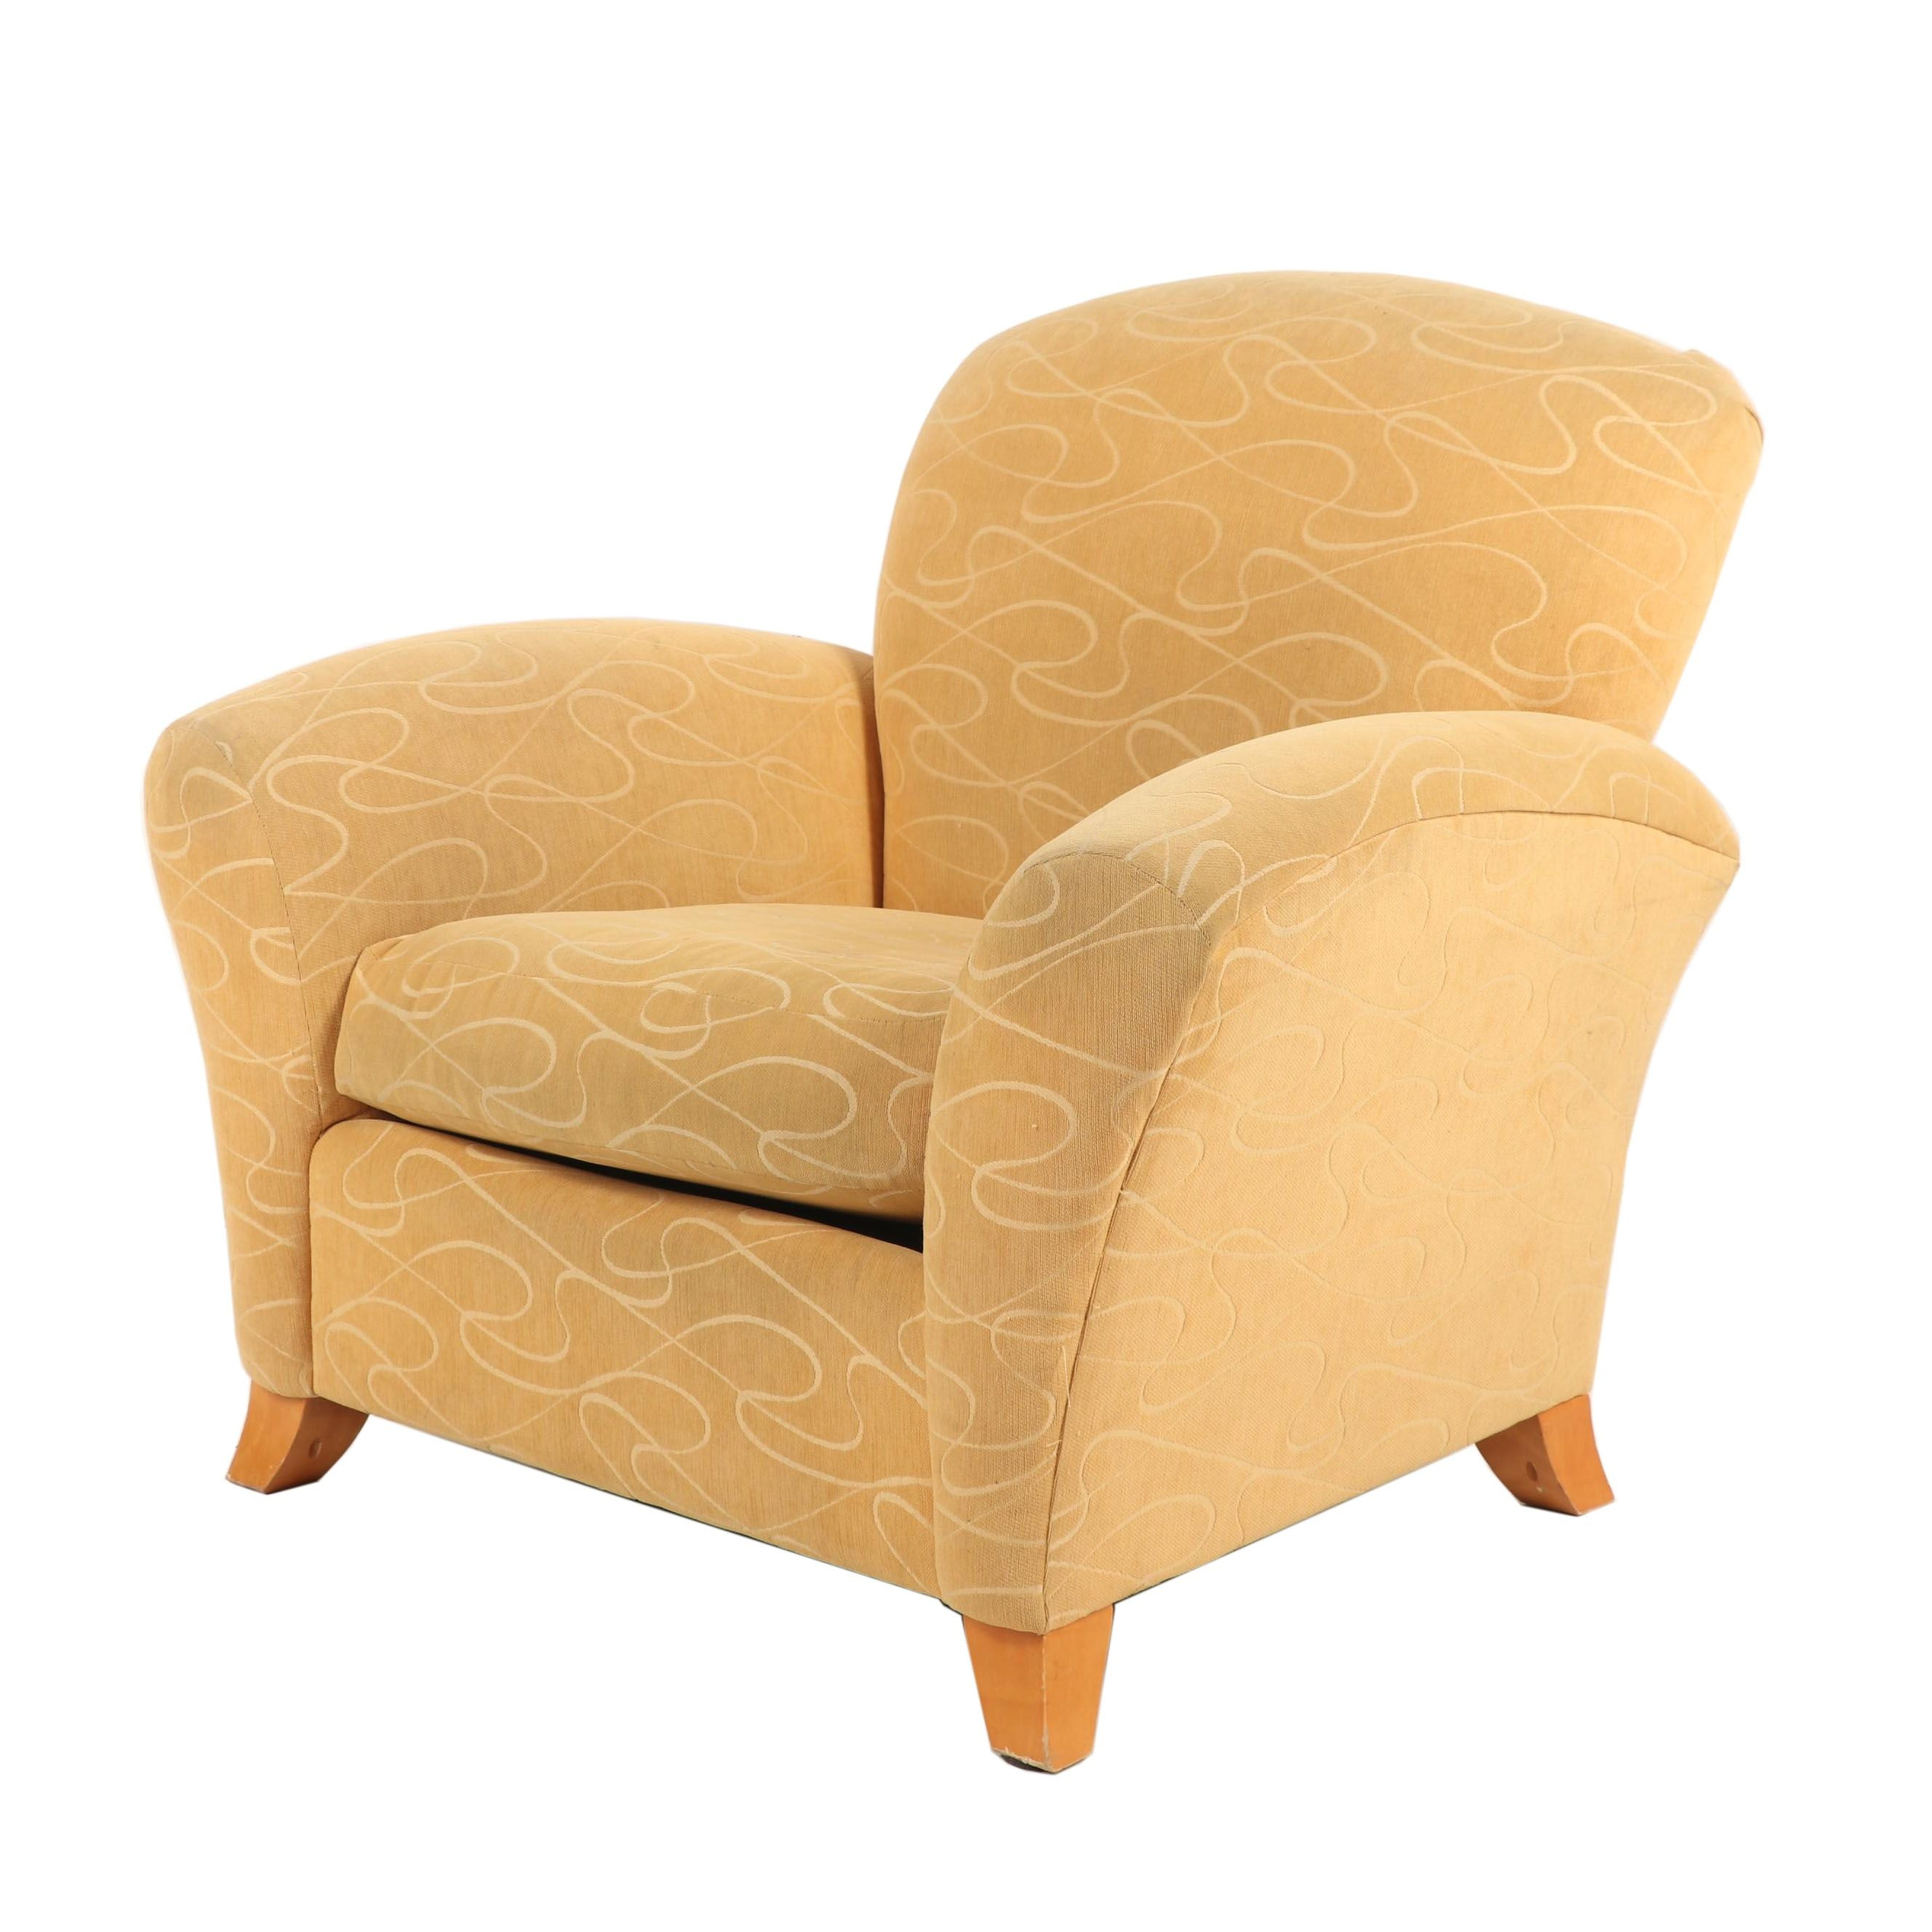 H.M. Richards Contemporary Upholstered Armchair